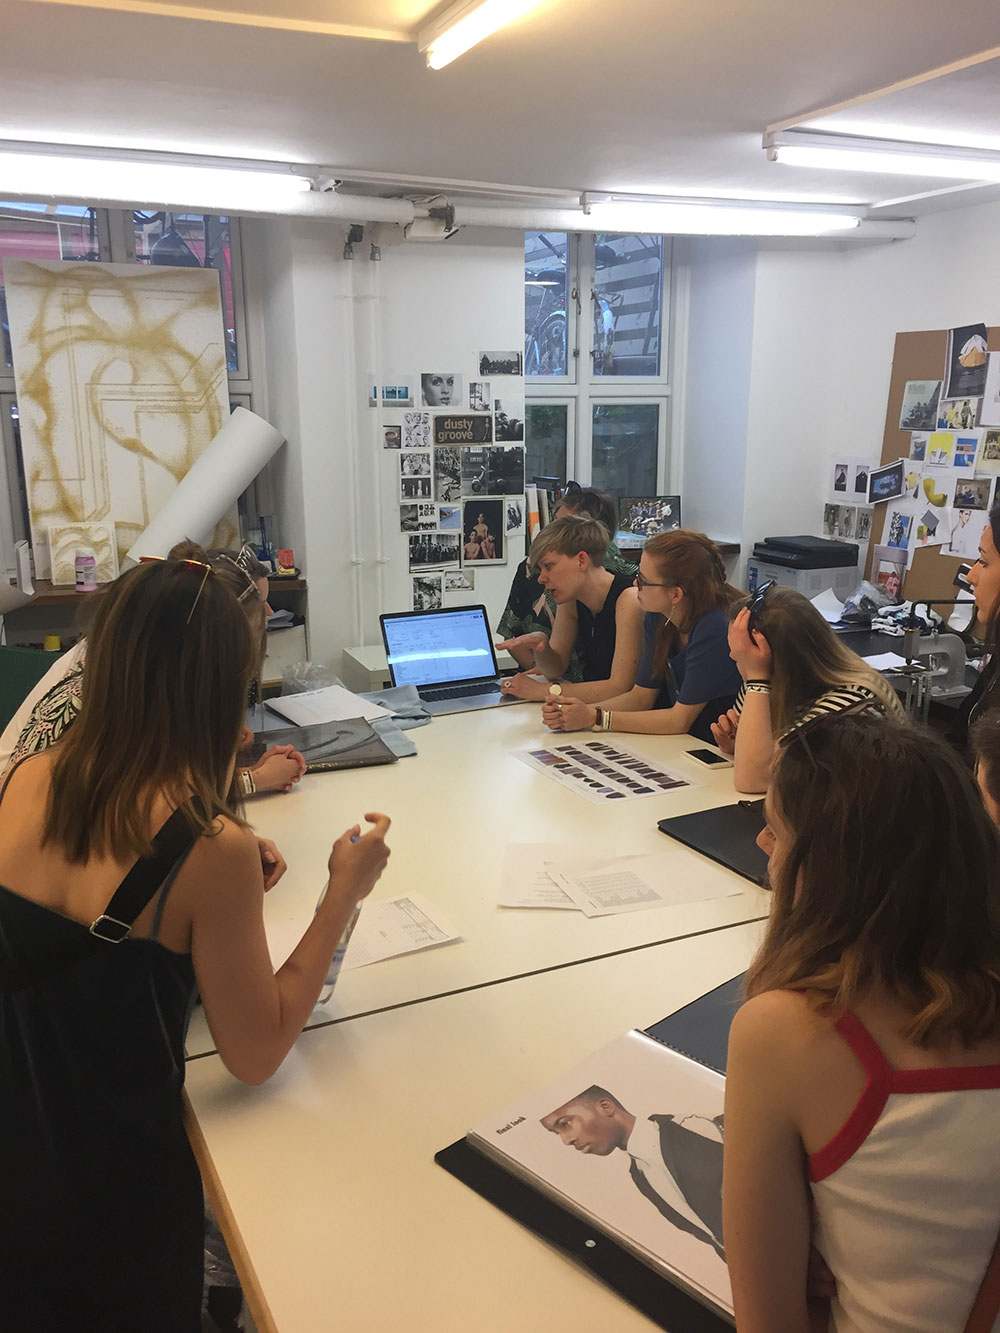 BA Fashion students from Norwich University of the Arts visiting a design student in Copenhagen